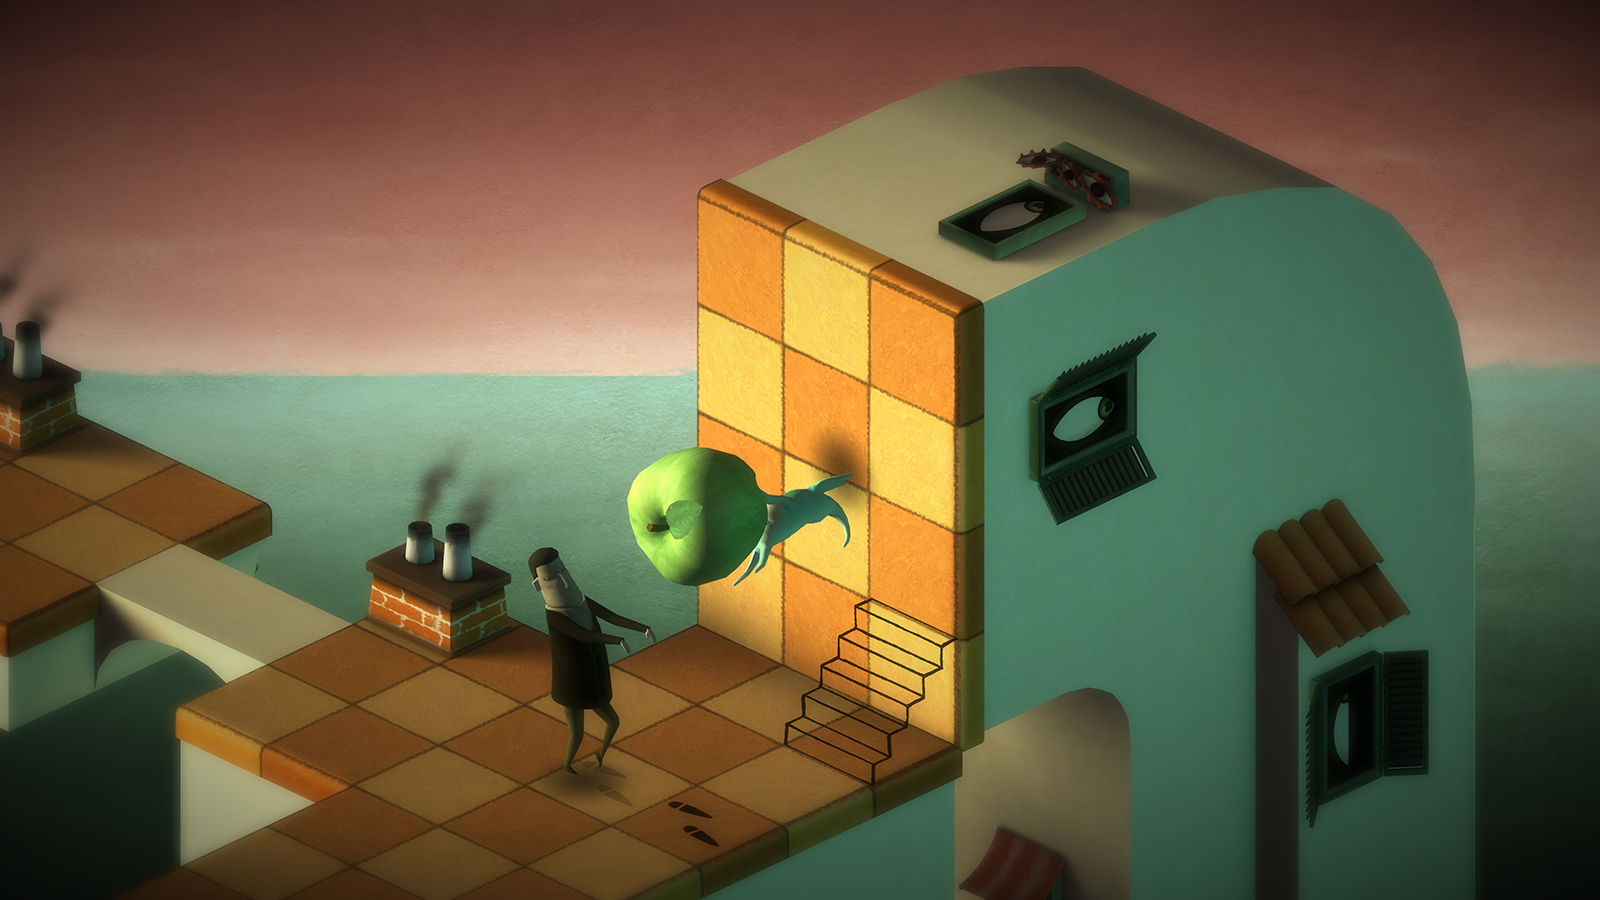 Gamescom '14 Quick Pick - Back to Bed is a surreal sleepwalking puzzler, inspired by Dali